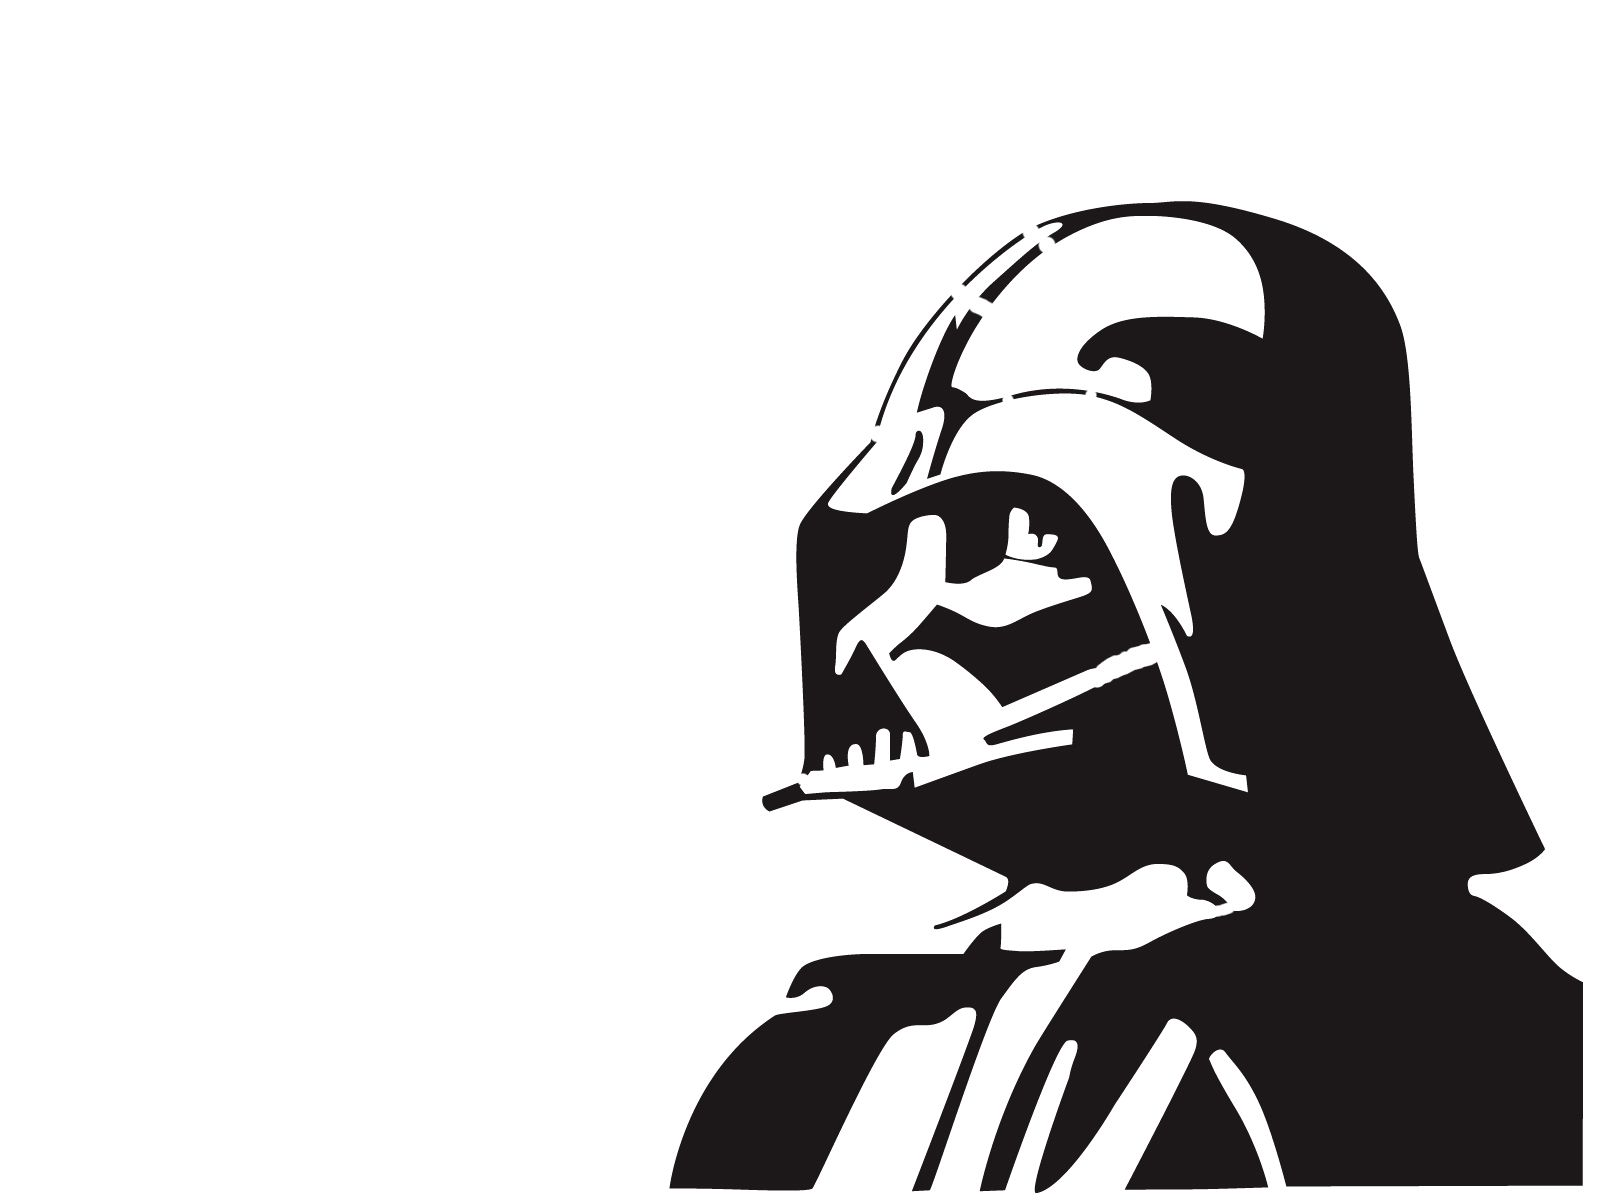 darth vader stencil template pochoirspochoir dark vadorstar - Pochoir Dark Vador